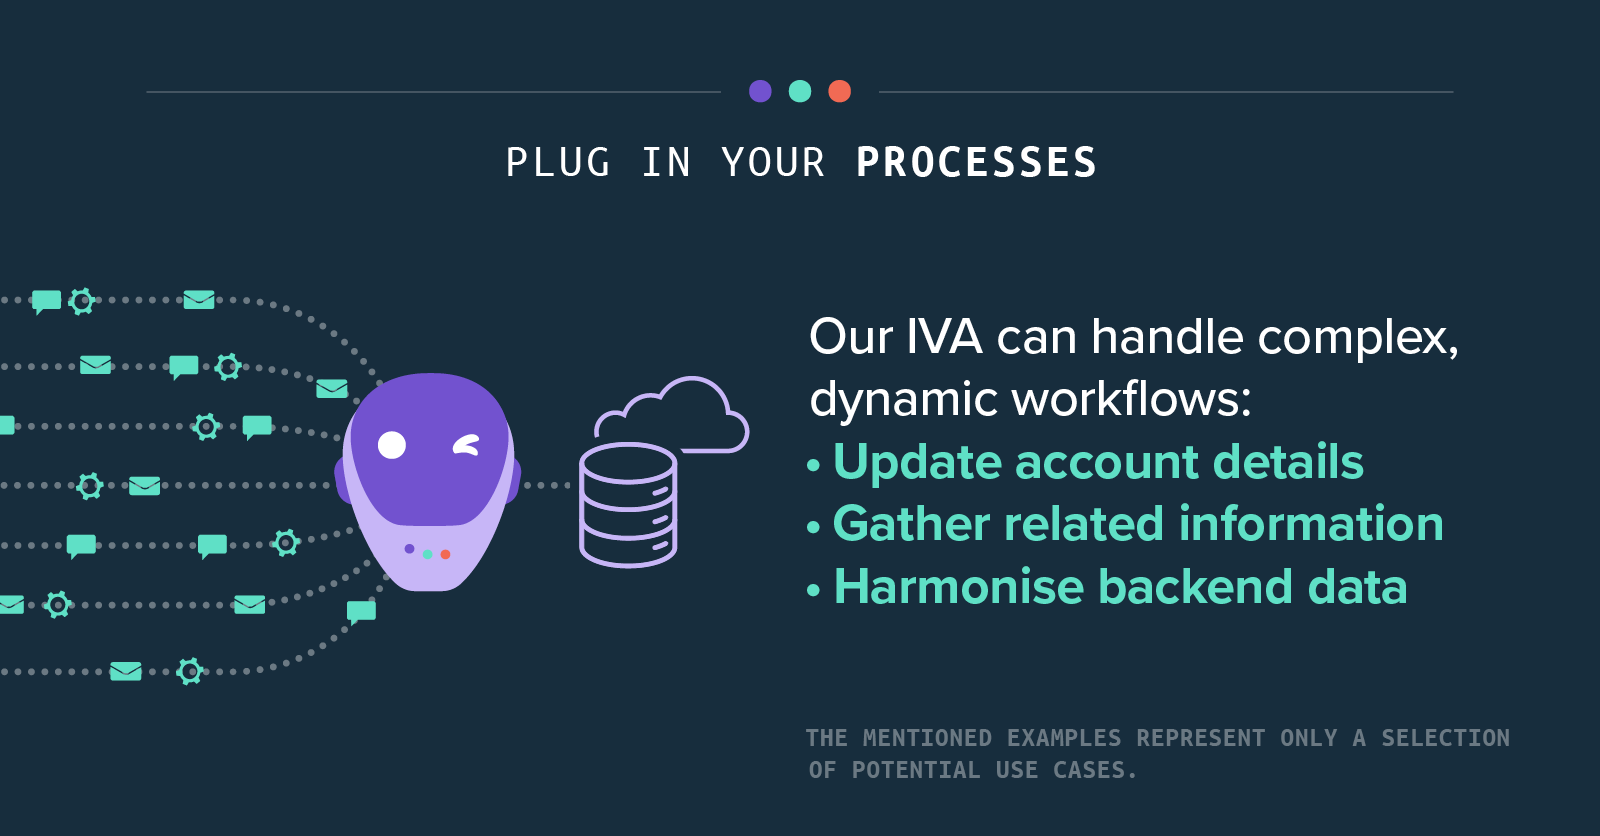 Plug in your Processes - Our IVA can handle complex, dynamic workflows: Update account details Gather related information Harmonise backend data